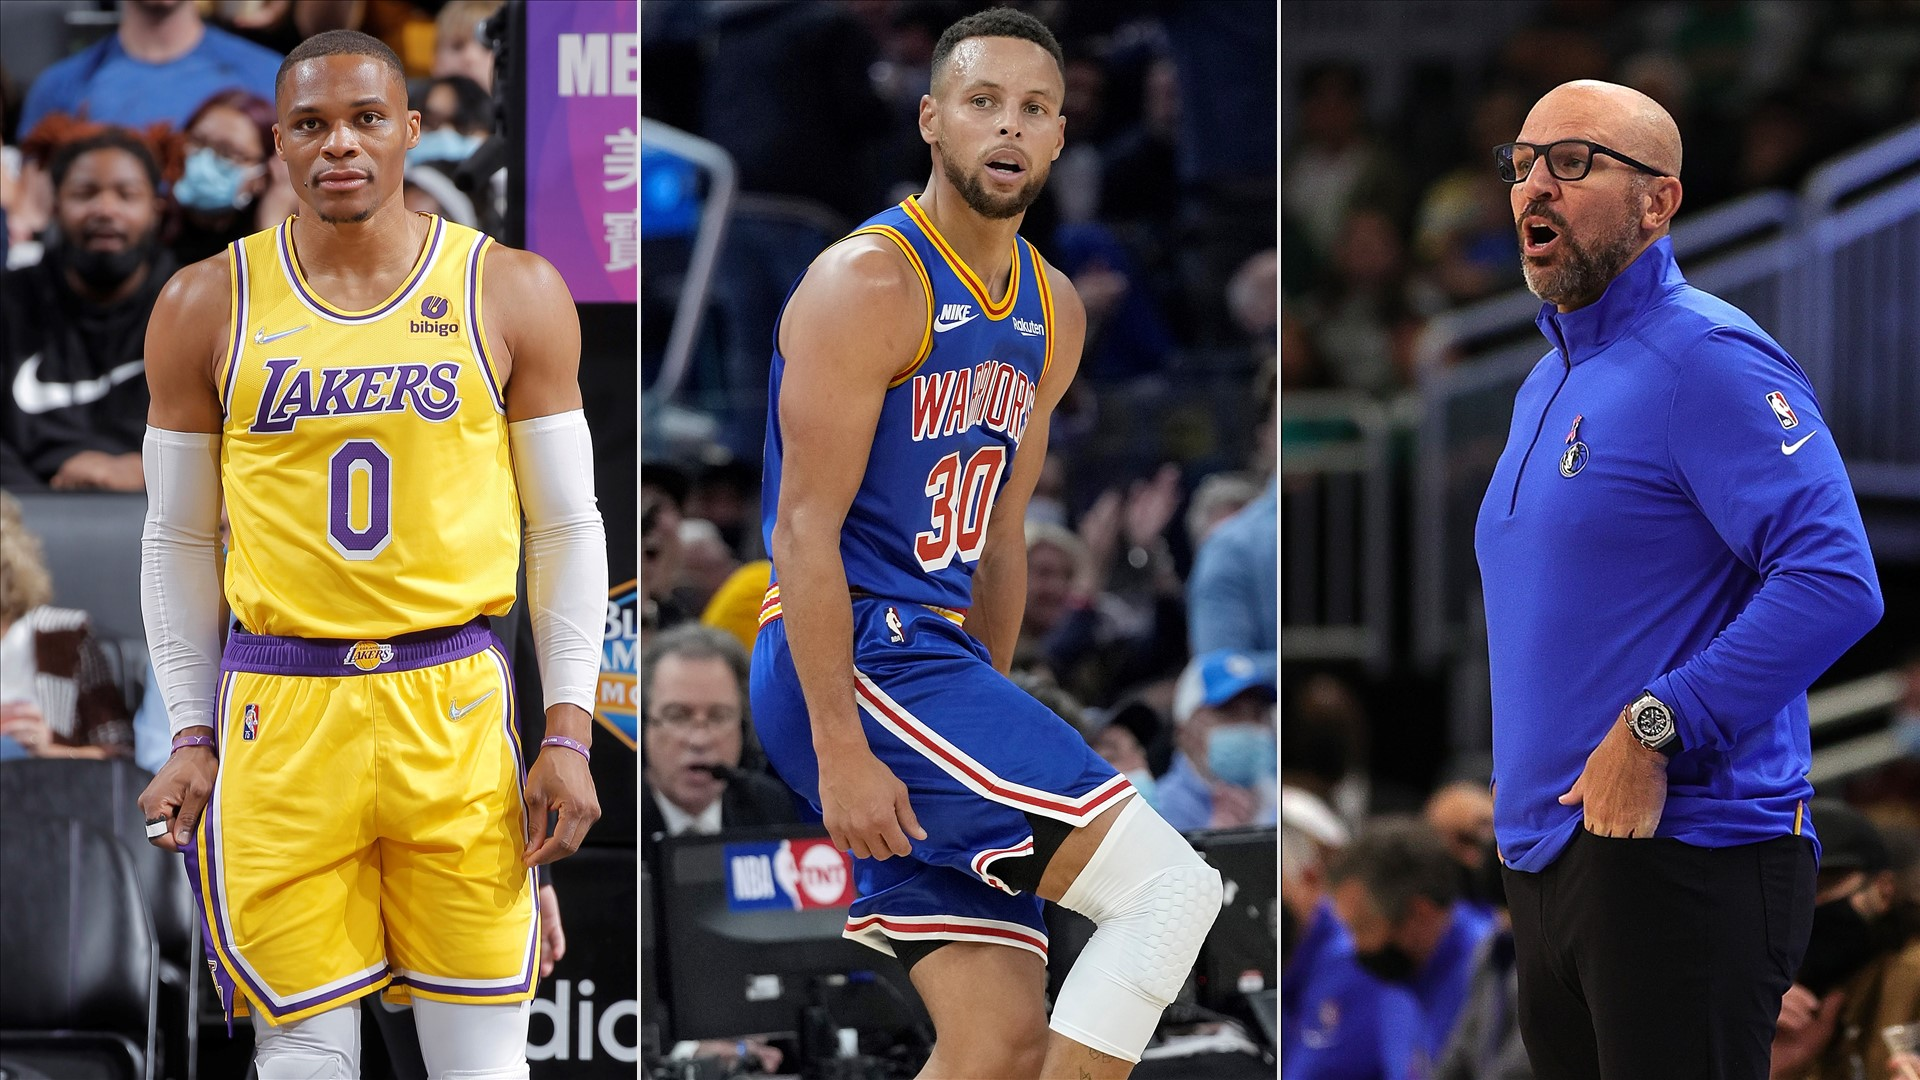 Russell Westbrook regret, Warriors own the West lead 10 wild overreactions from NBA opening week